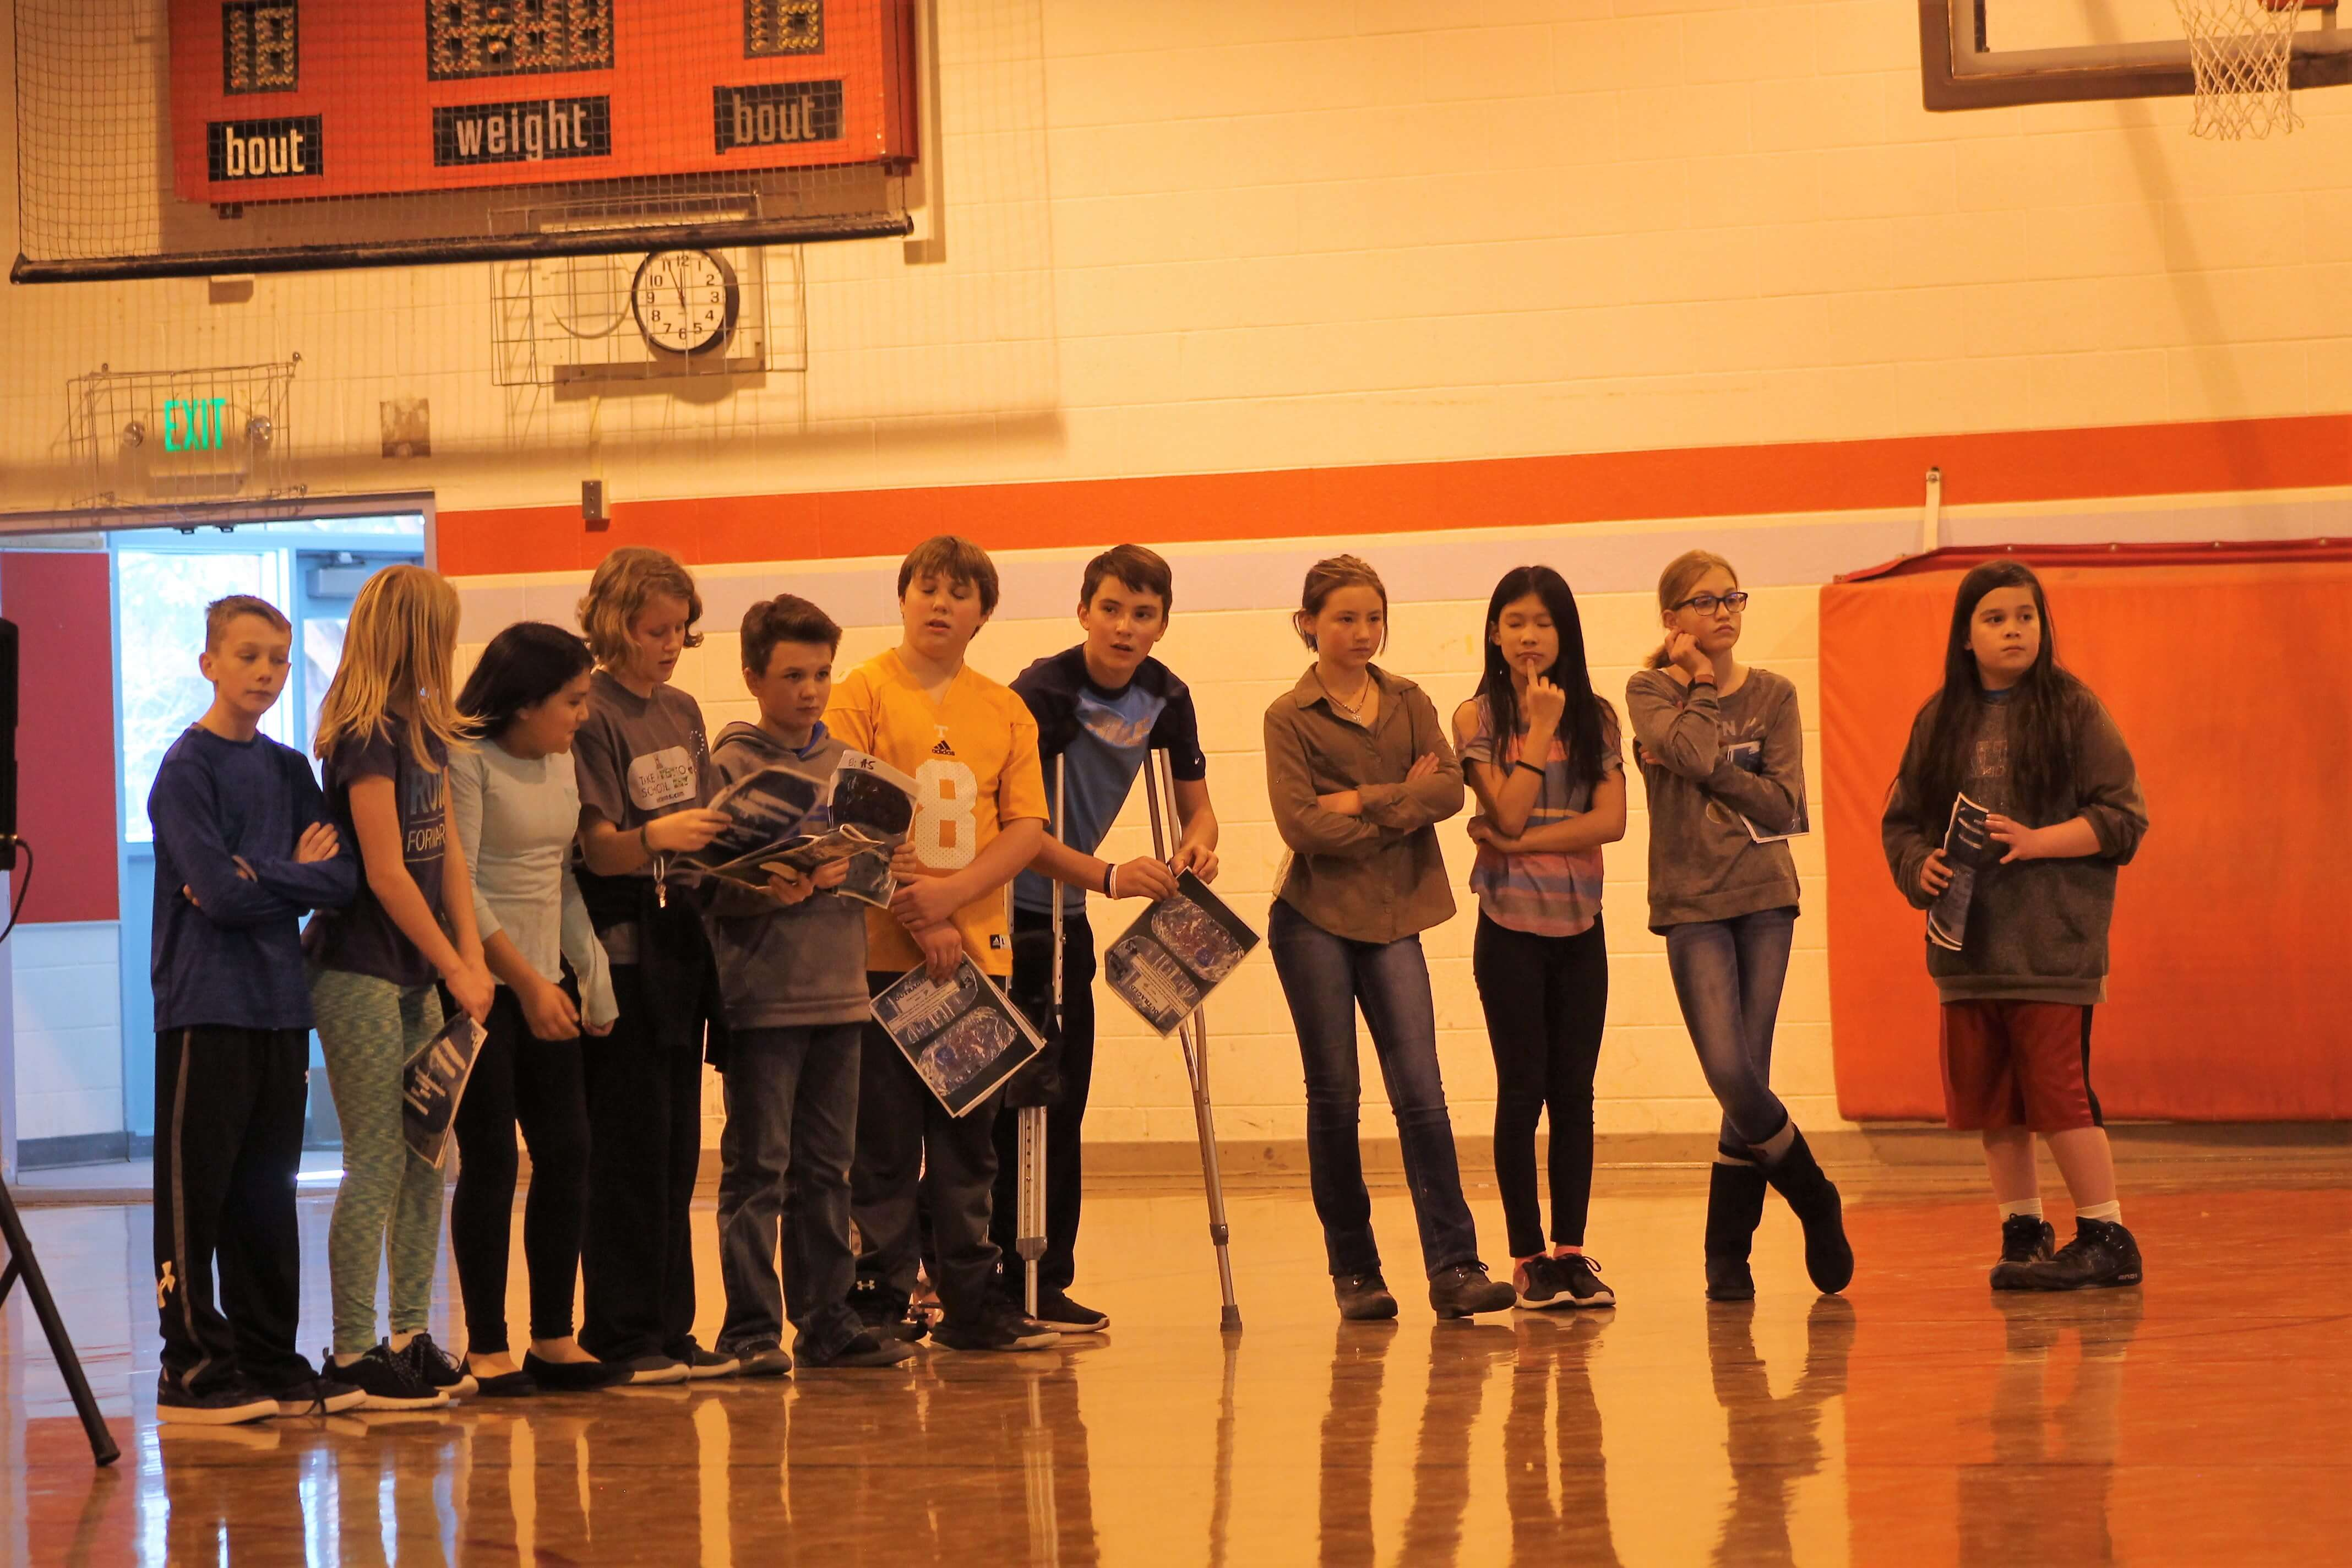 Contemporary image of middle school students lined up in a gymnasium.